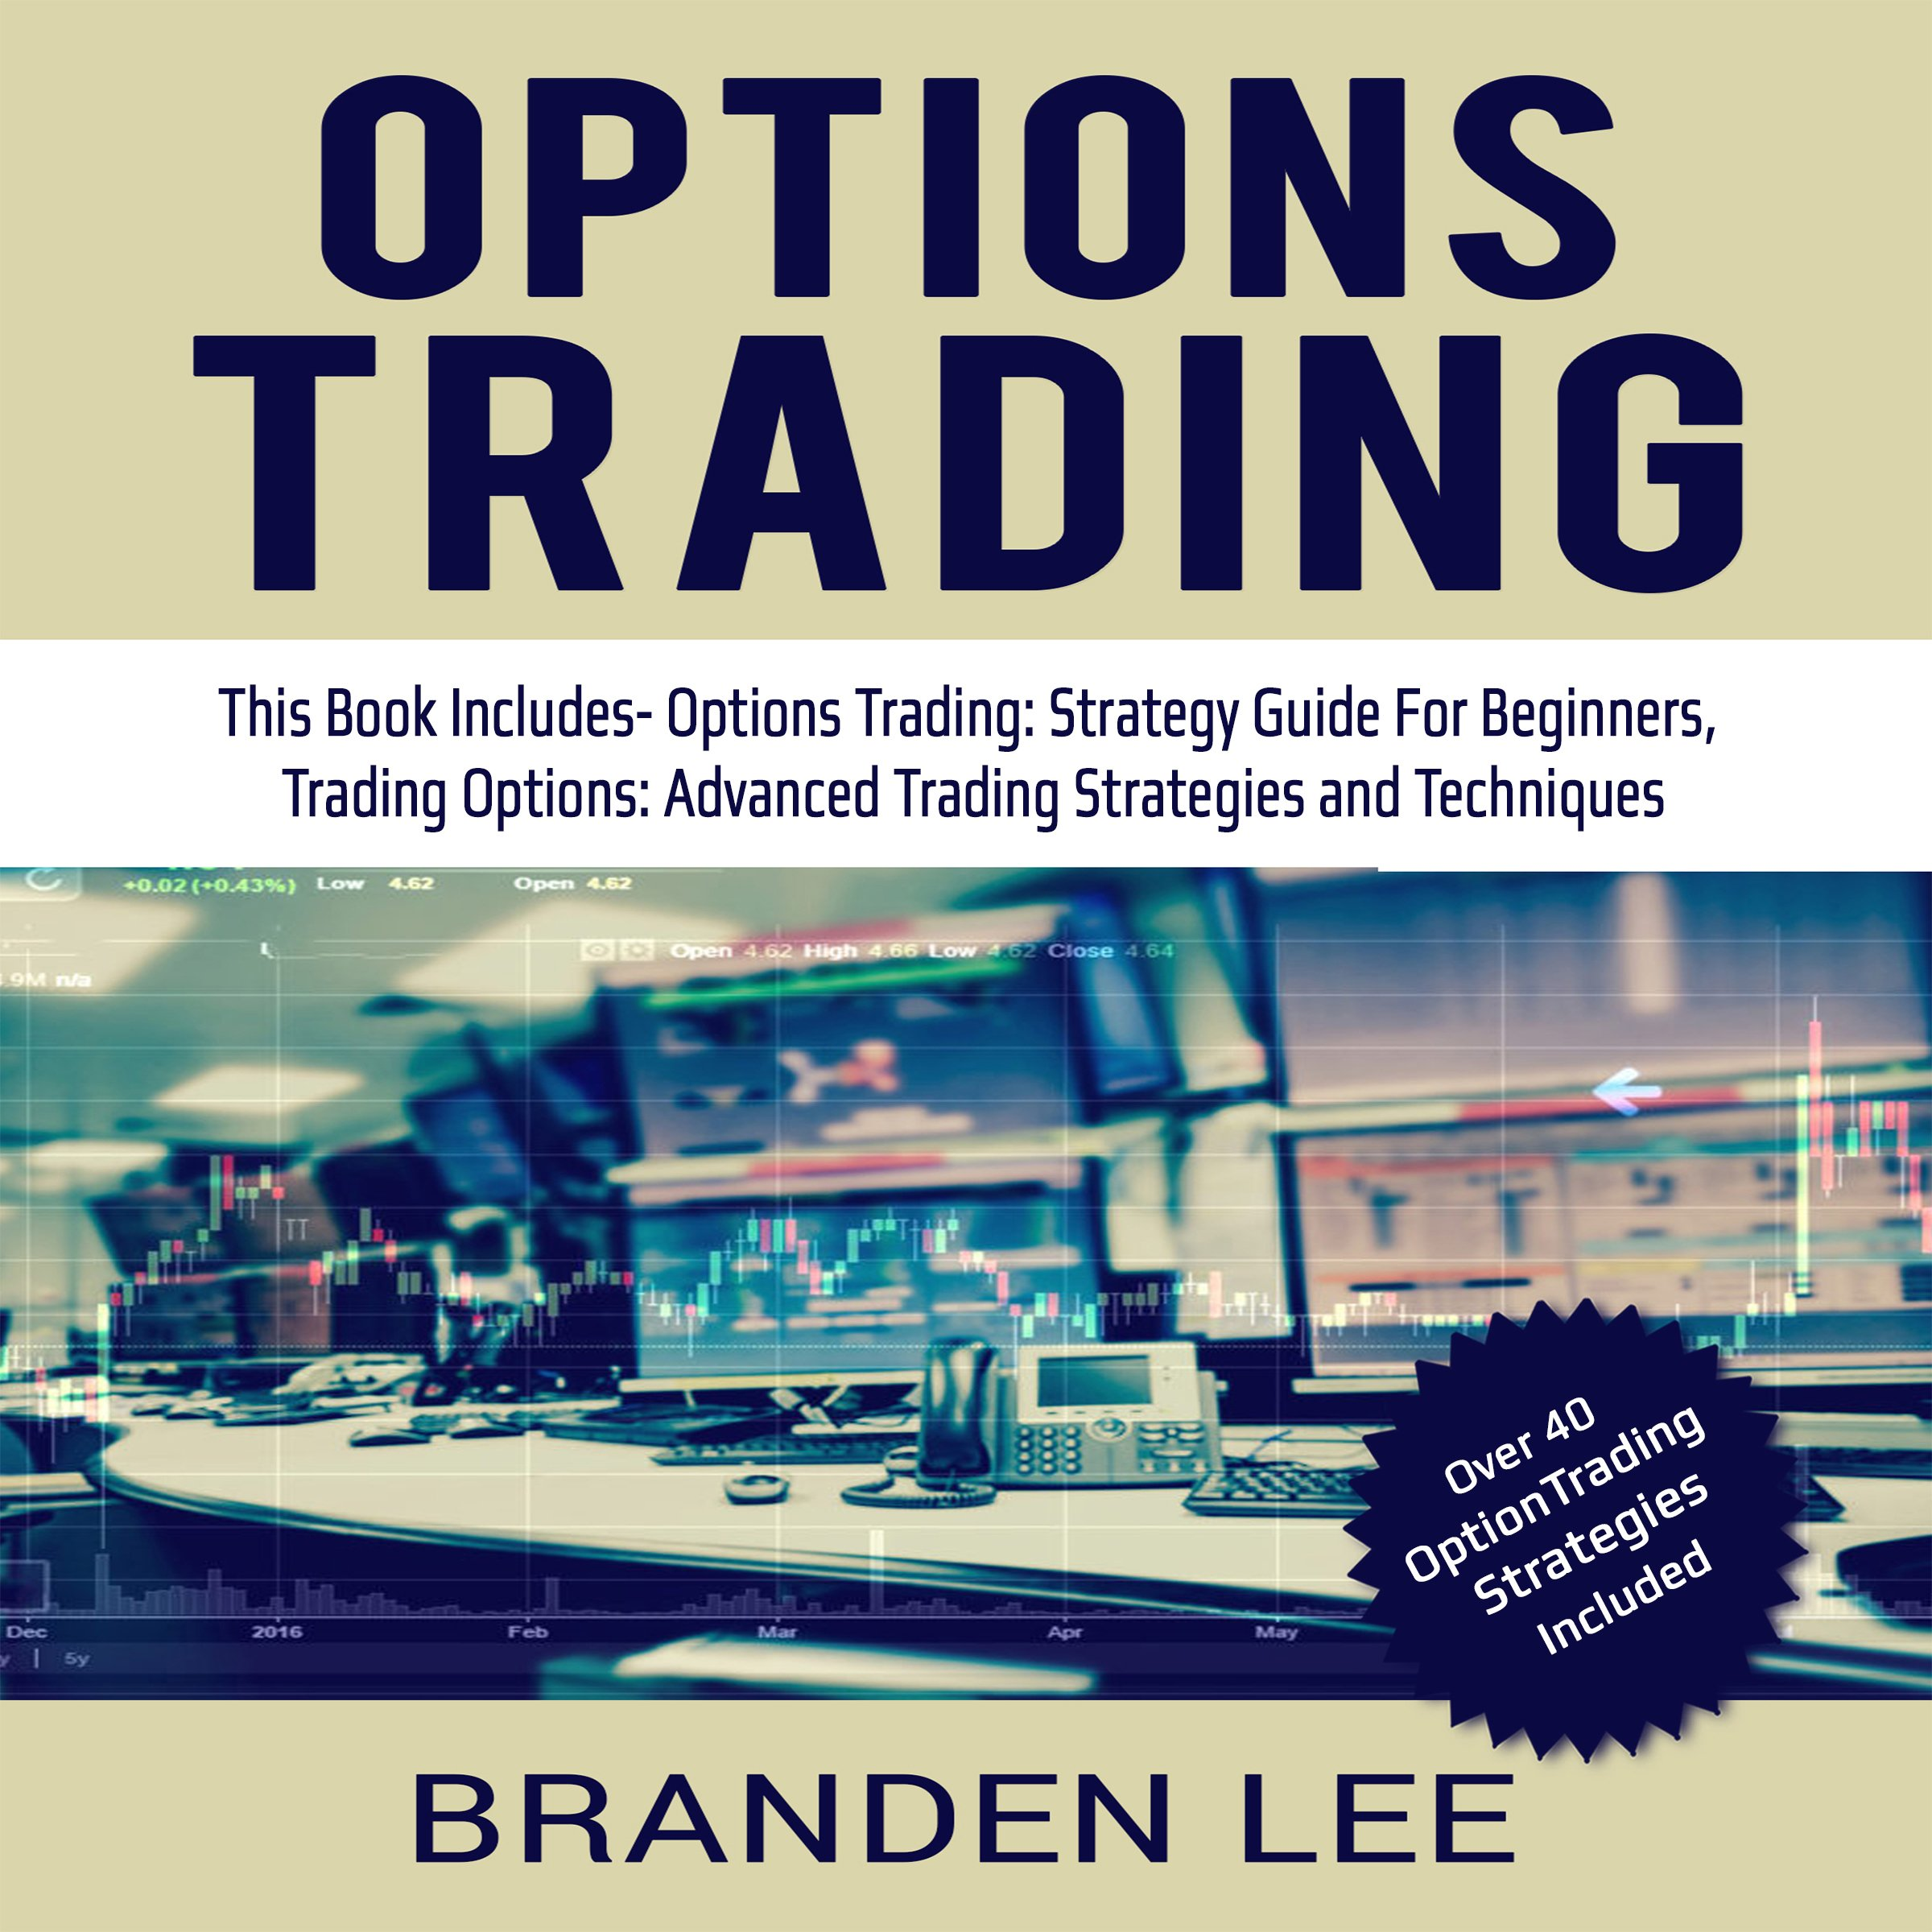 Options Trading: This Book Includes - Options Trading: Strategy Guide for Beginners, Trading Options: Advanced Trading Strategies and Techniques